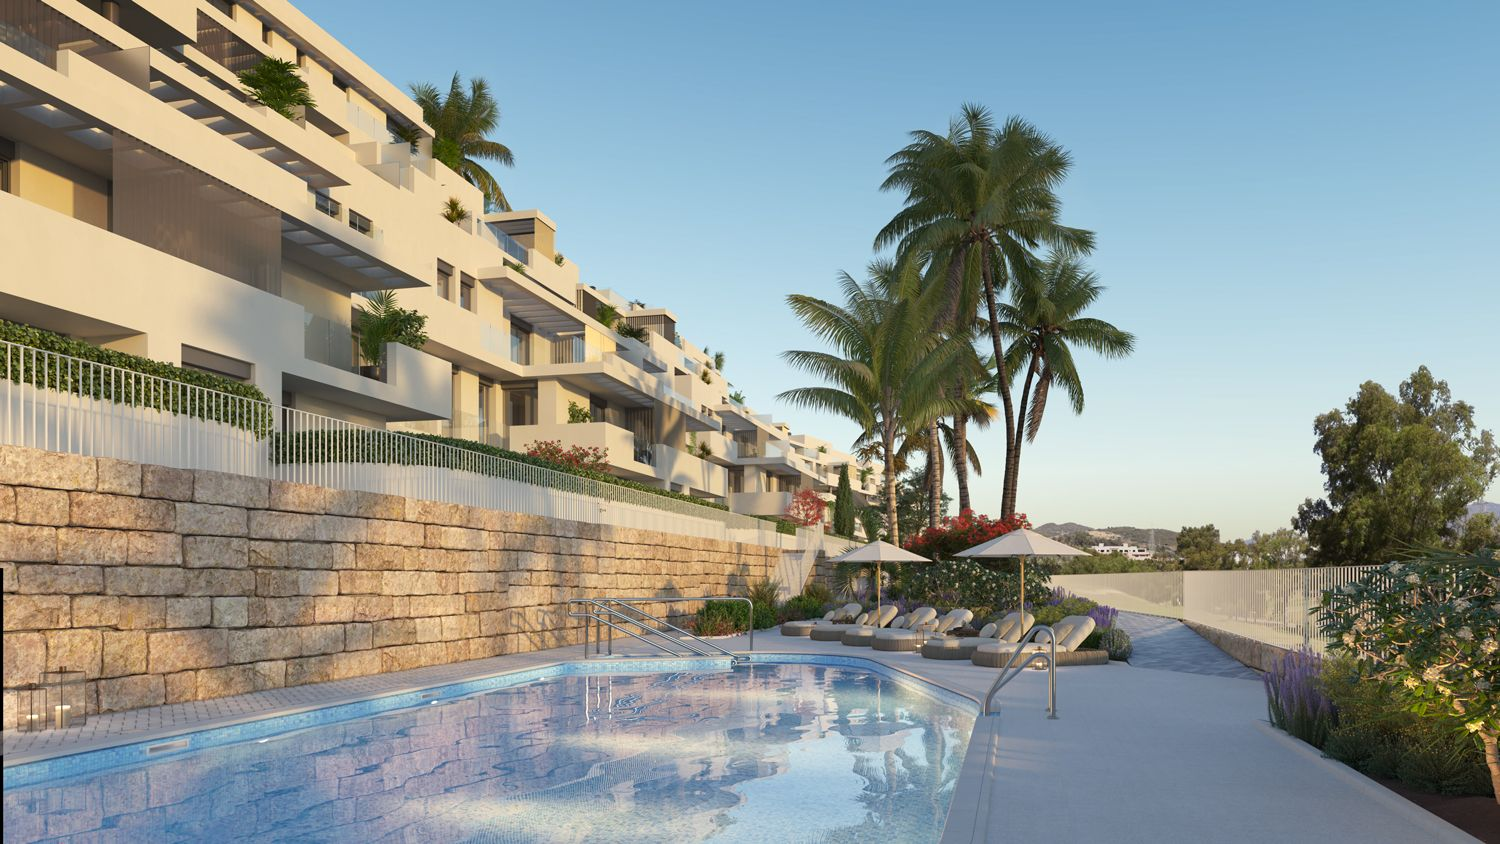 Apartments with views over golf courses in Estepona 23